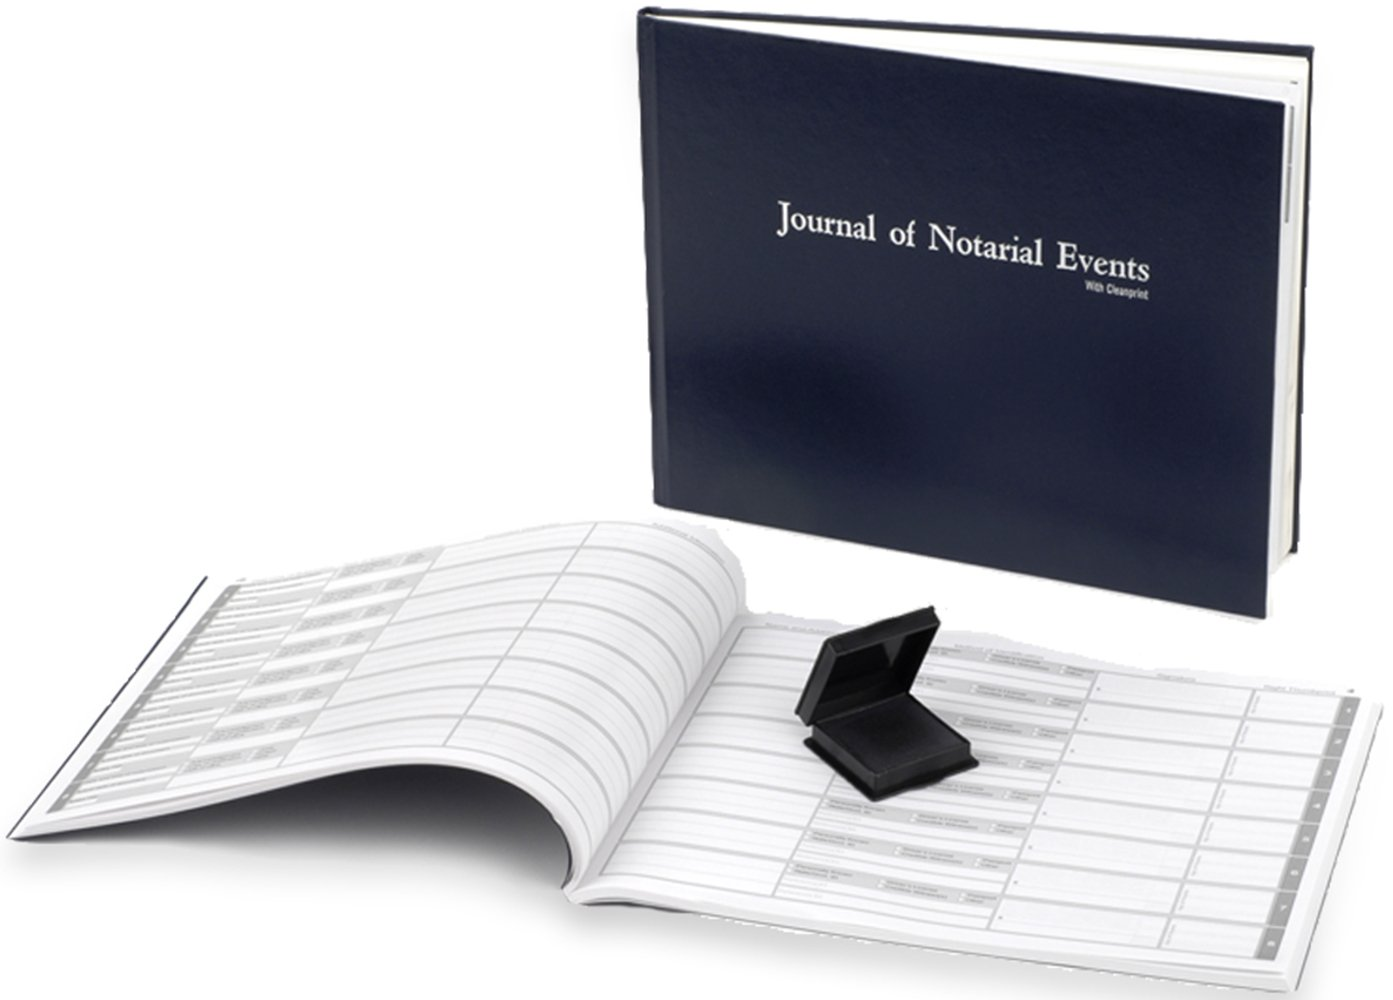 Notary Journal with Clean Print Technology with Ink-less Fingerprint Ink Pad 488 Entries Works in all 52 States Official Notarial Acts Records Log Book Premium Professional Quality (Soft Cover)